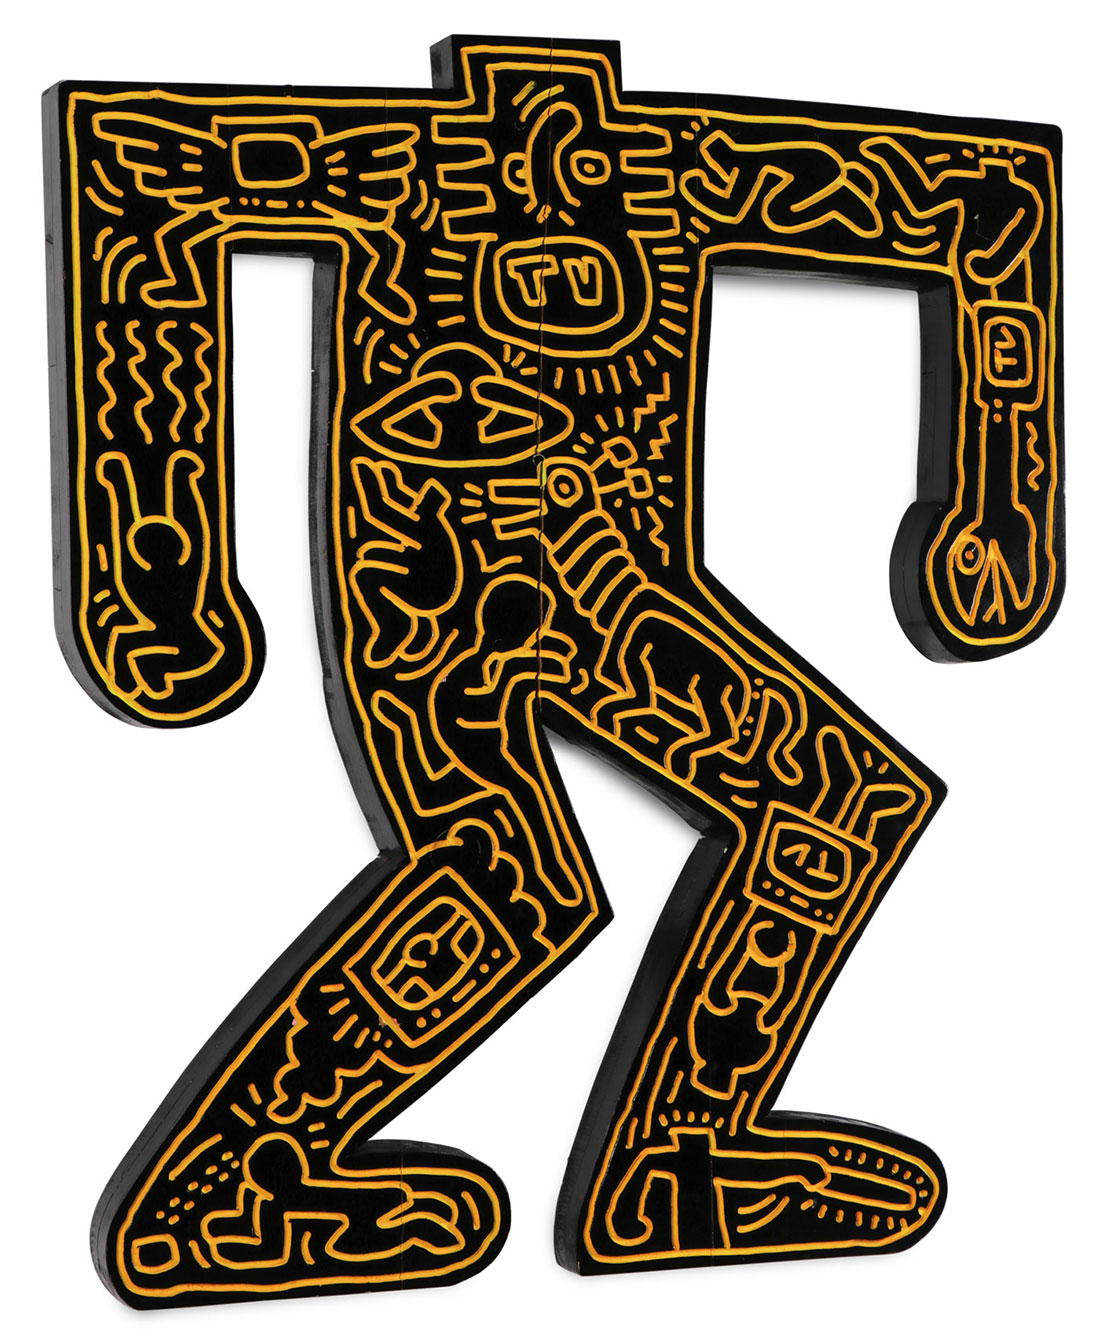 Keith Haring sculpture sold